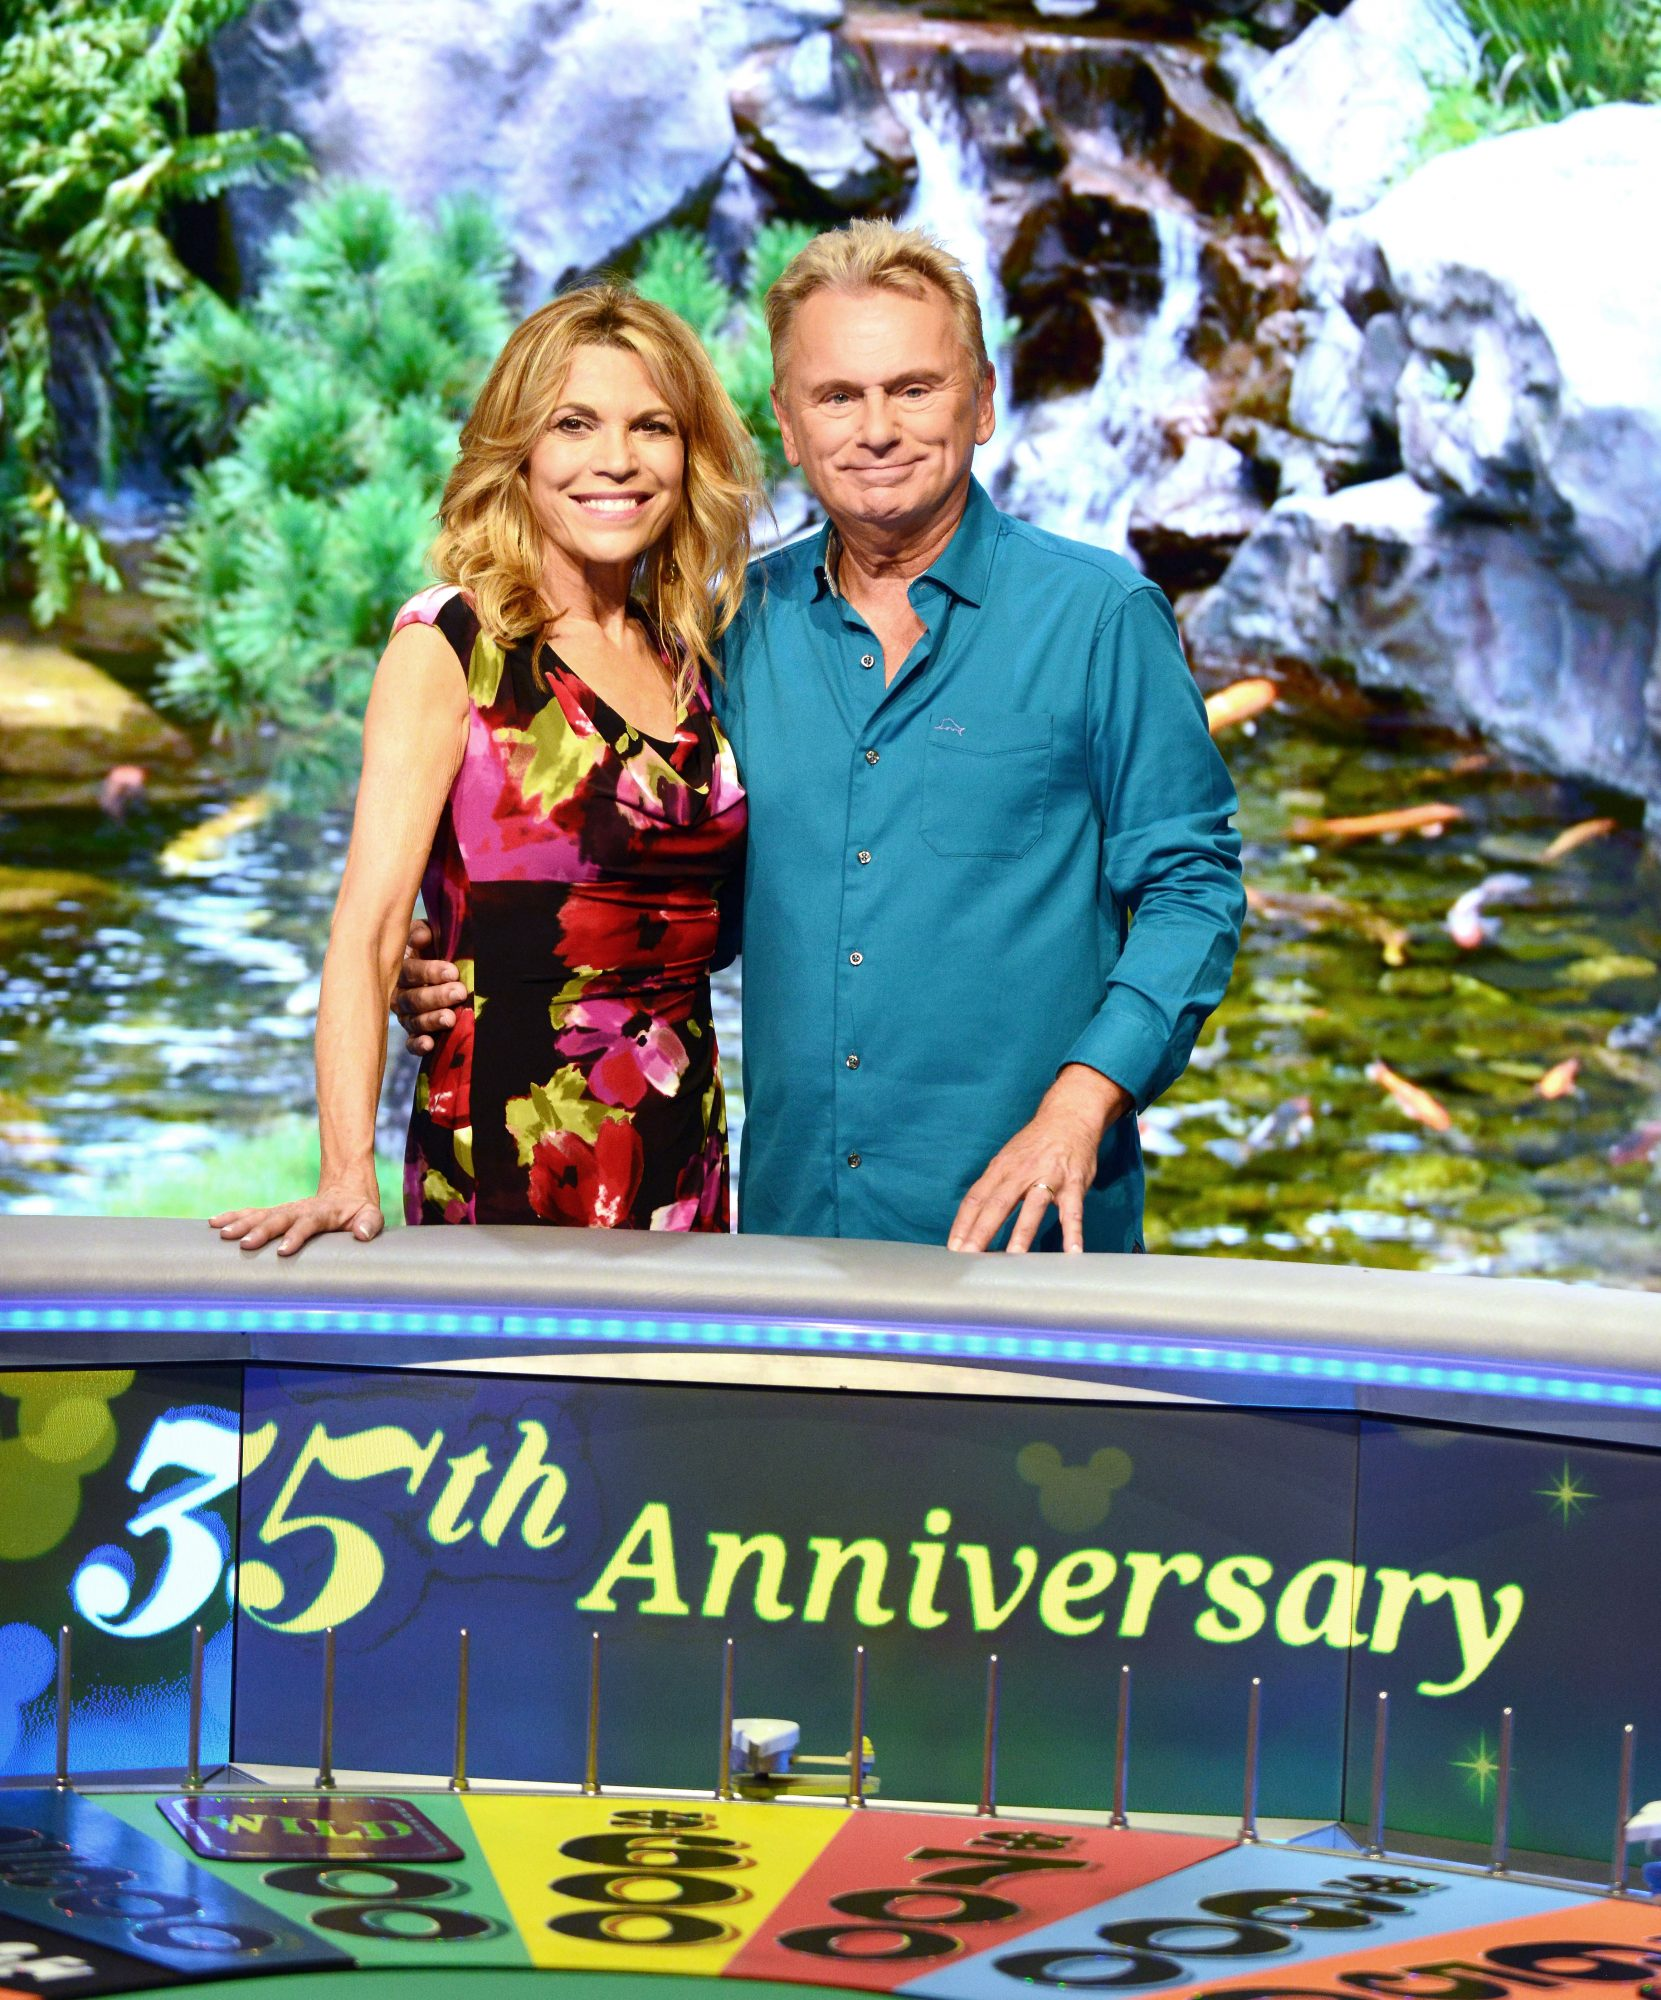 Vanna White and Pat Sajak Wheel of Fortune 35th Anniversary